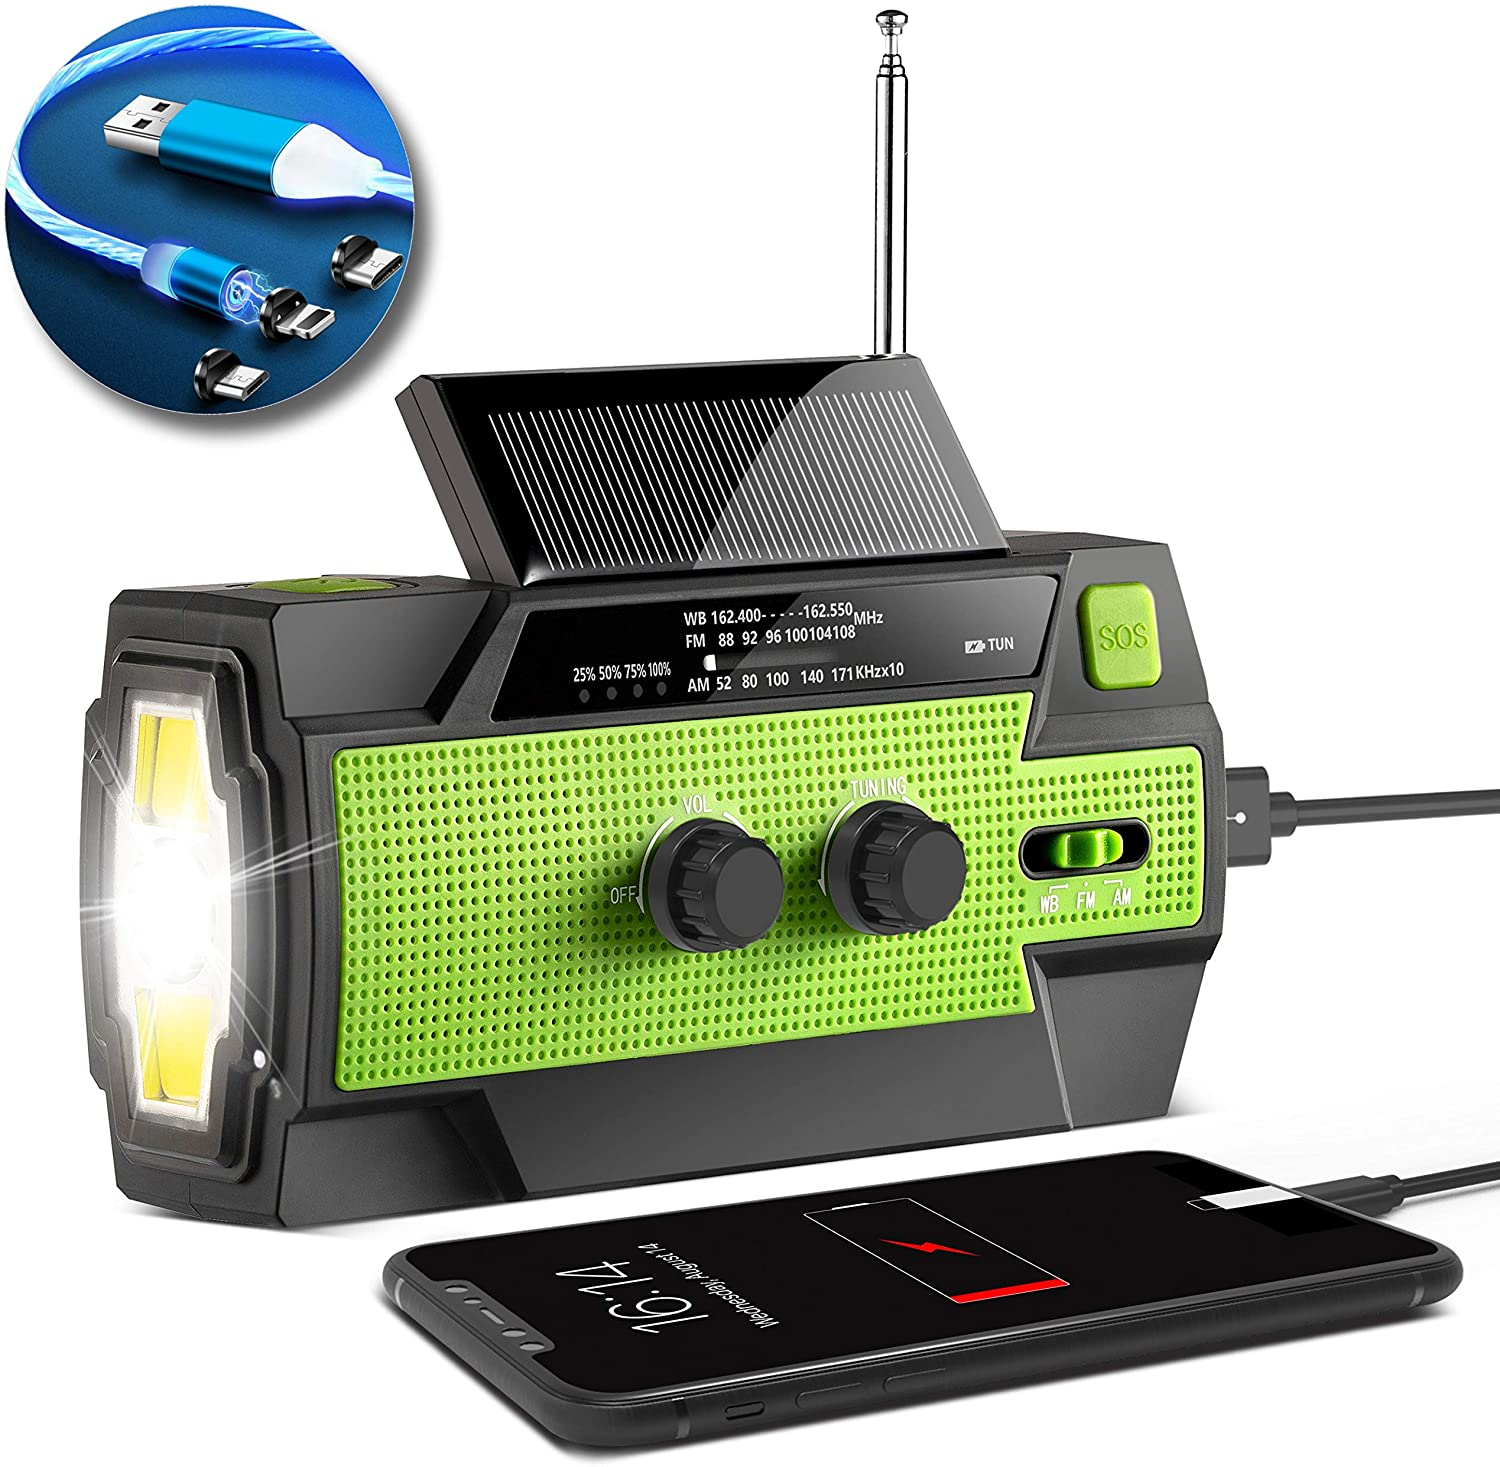 [2020 Version] Hand-Crank-Radio,4000mAh Portable Weather Solar Radios with Motion Sensor Reading Lamp,3 GearLED Flashlight,SOS Alarm,Cell Phone Charger,AM/FM/NOAA + Free Stylish 3 in 1 Fast Cable